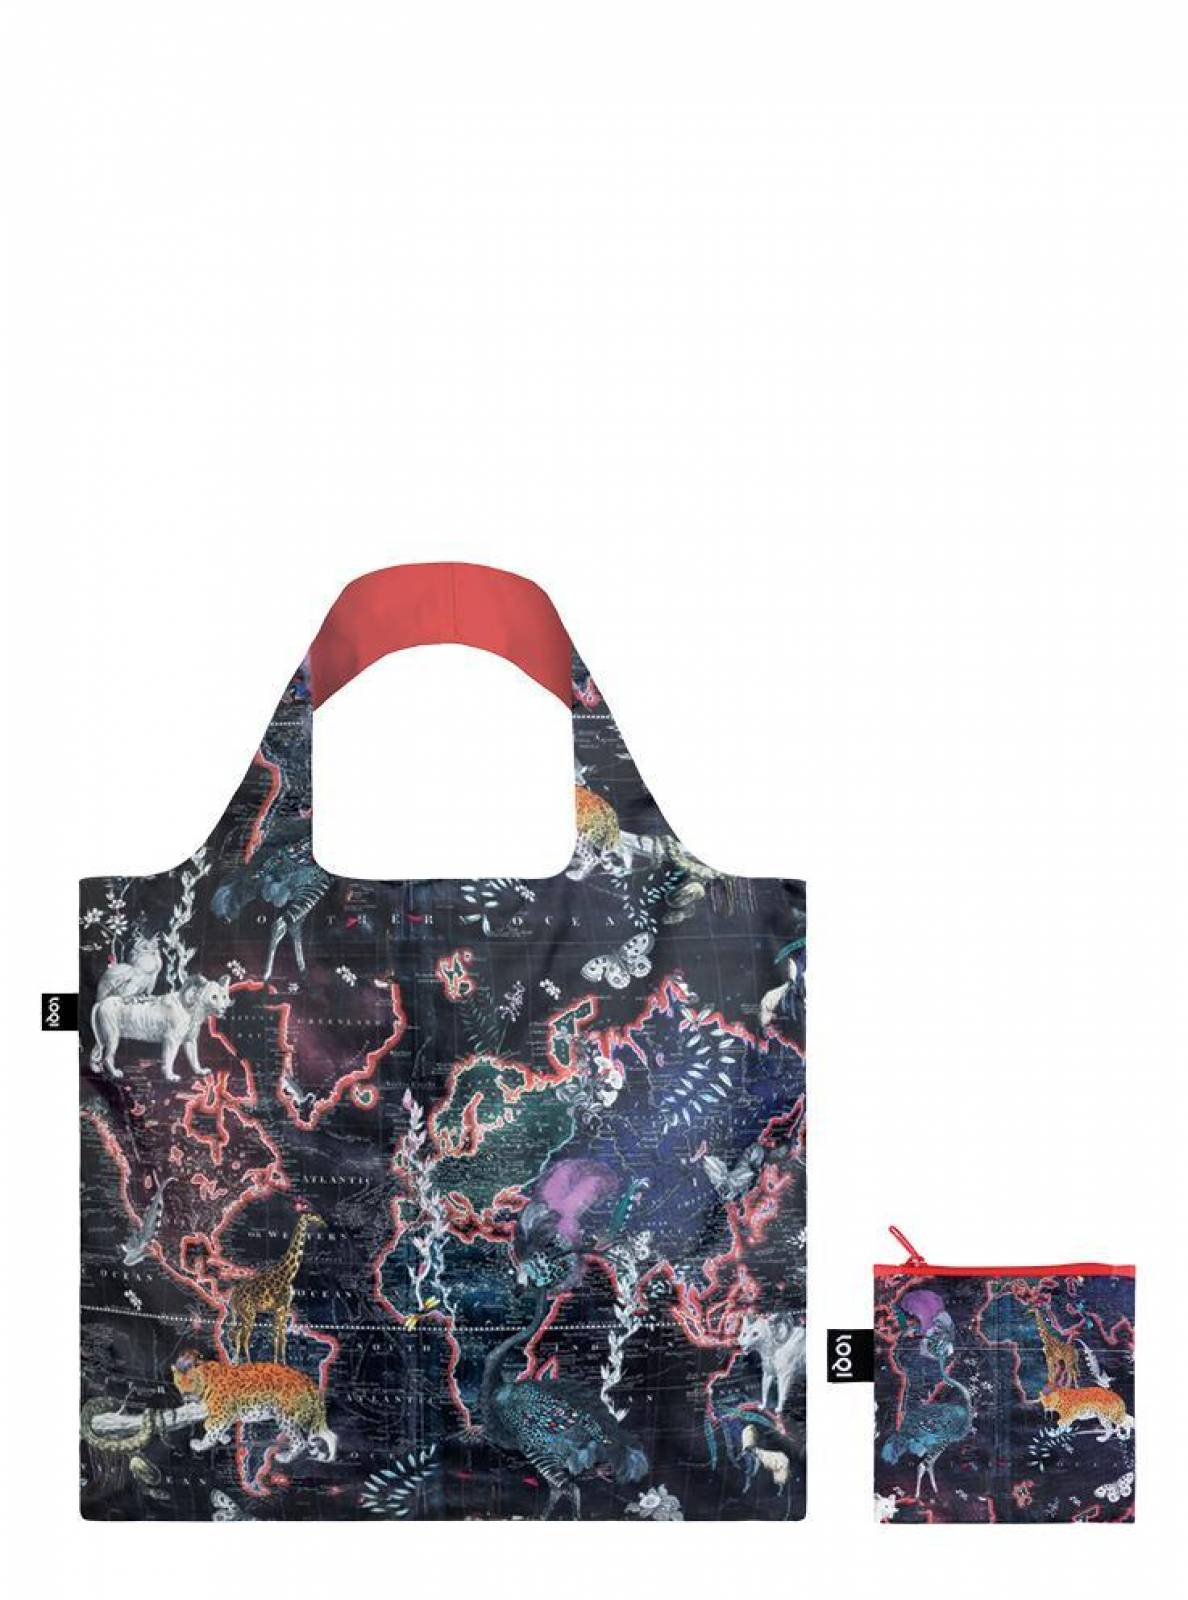 World Map - Reusable Tote Bag With Pouch thumbnails